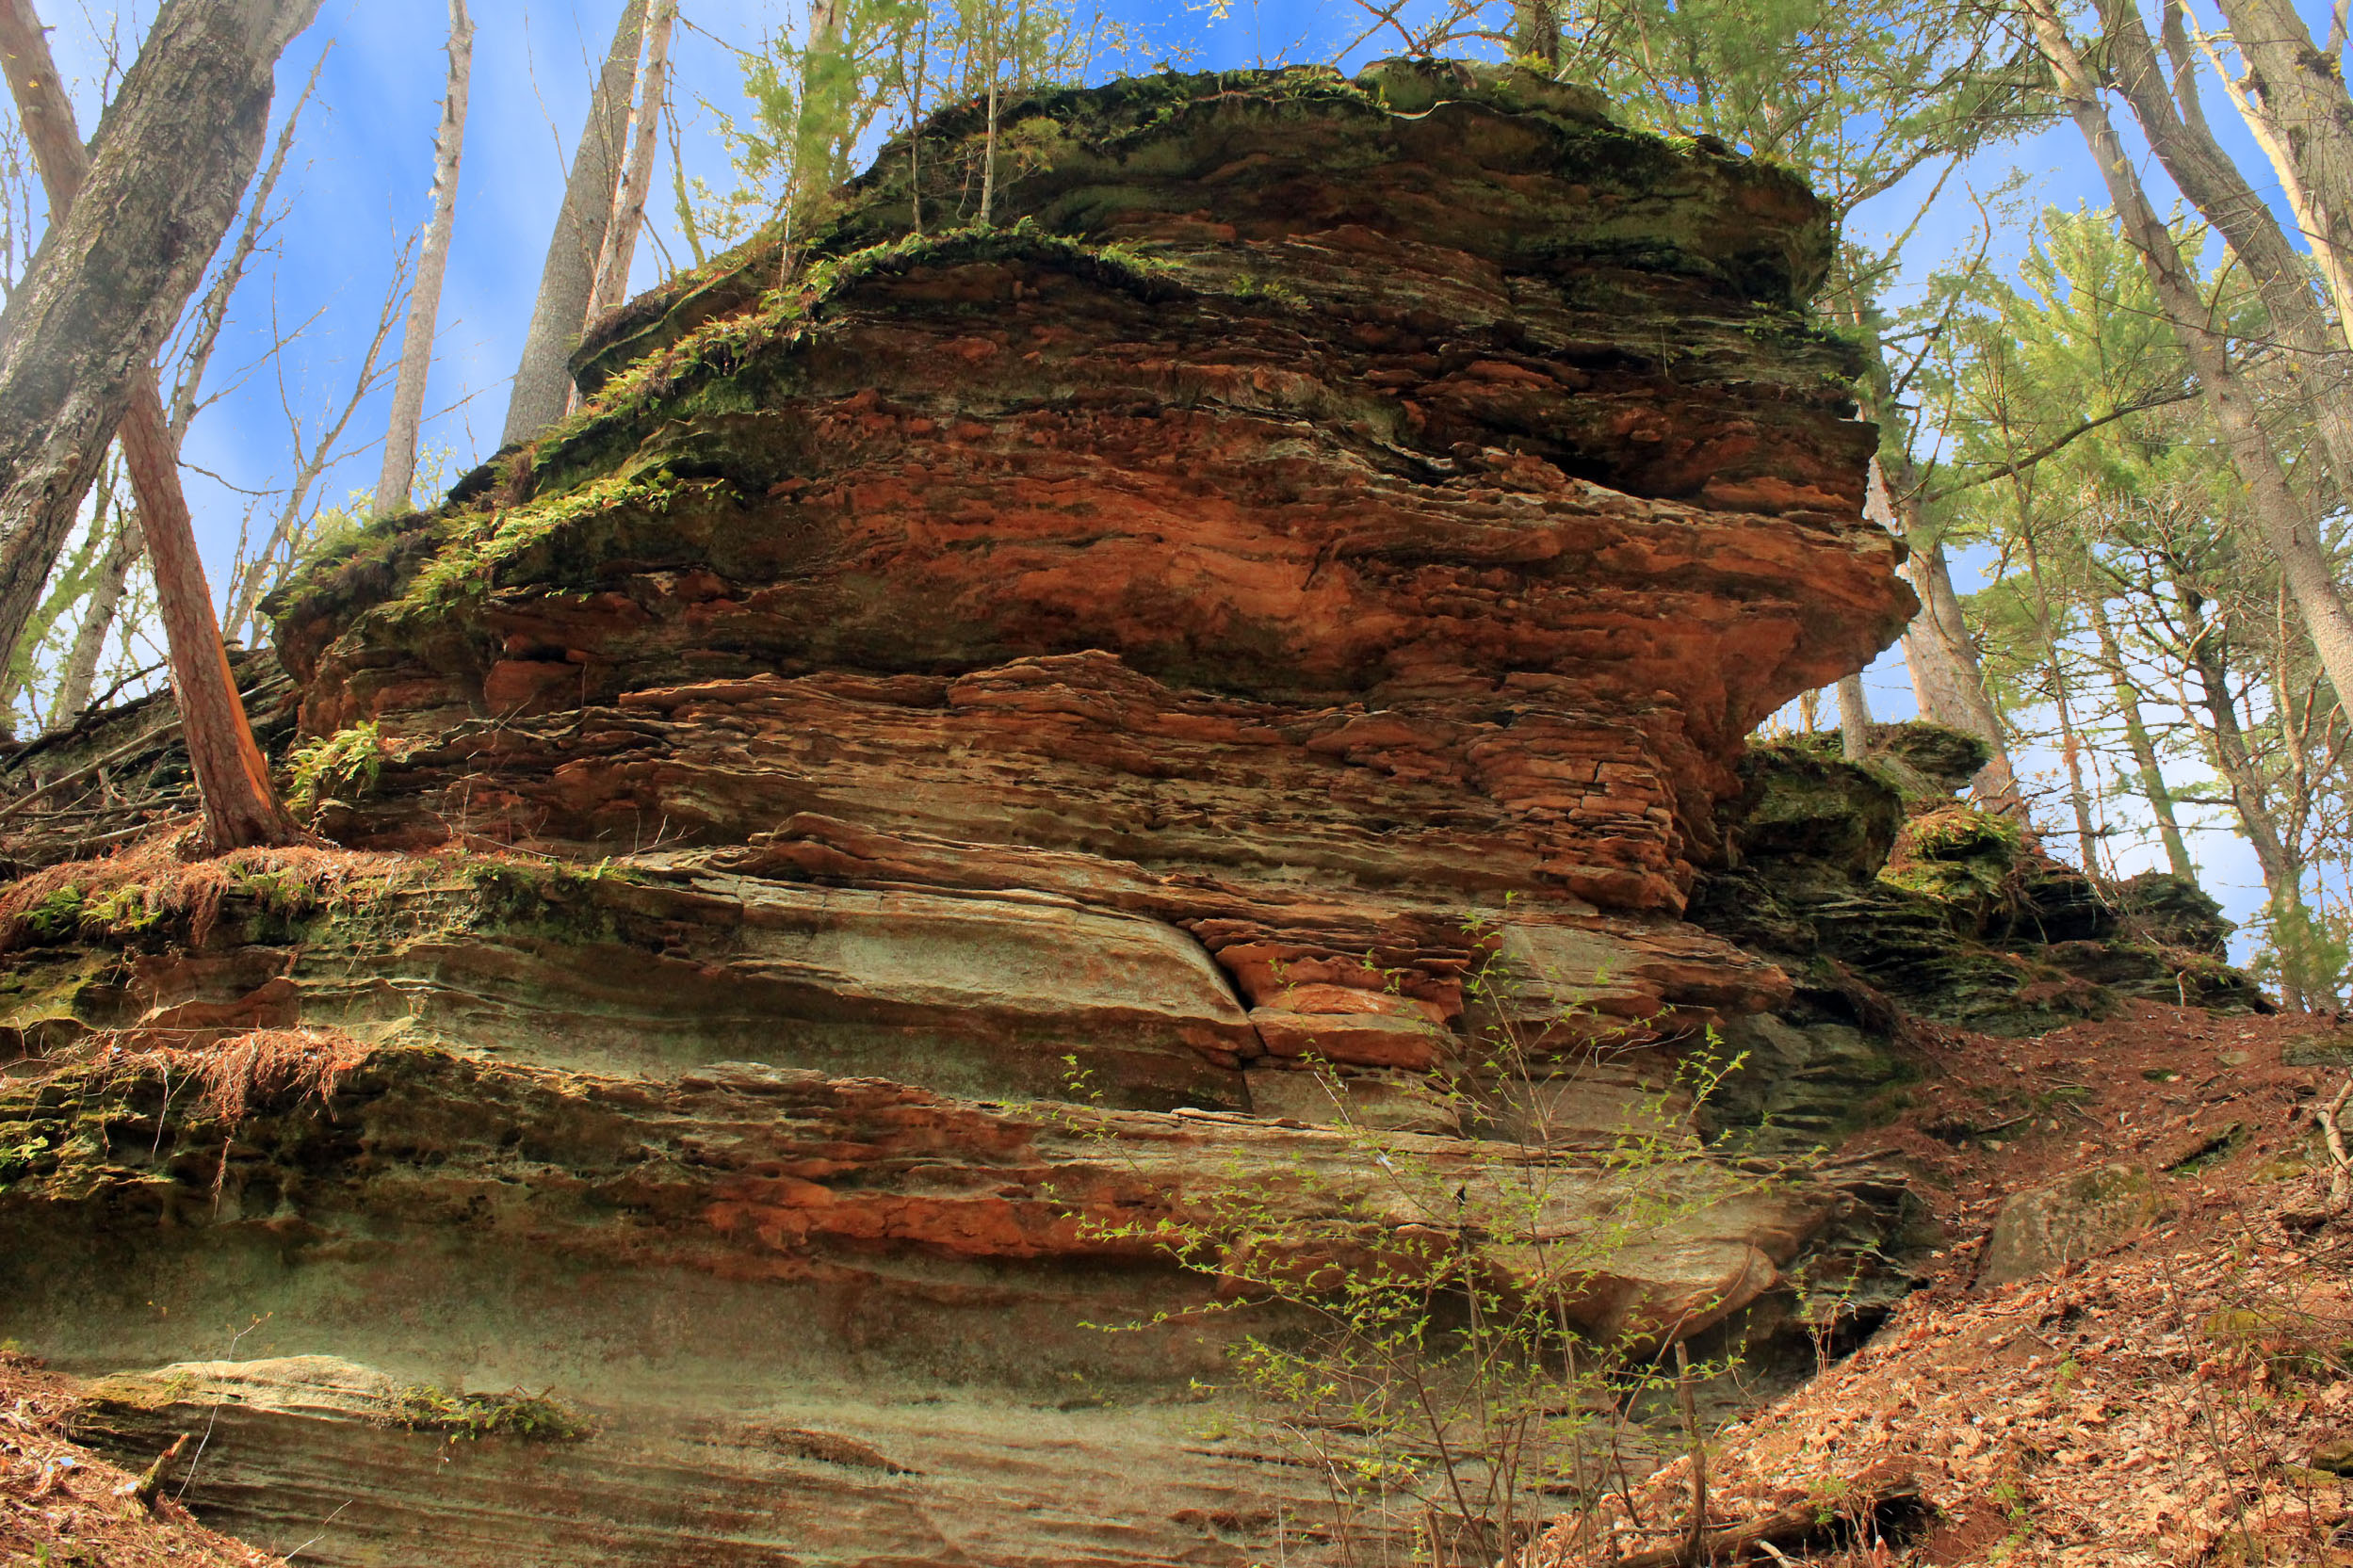 Rock outcropping at Rocky Arbor State Park, Wisconsin.